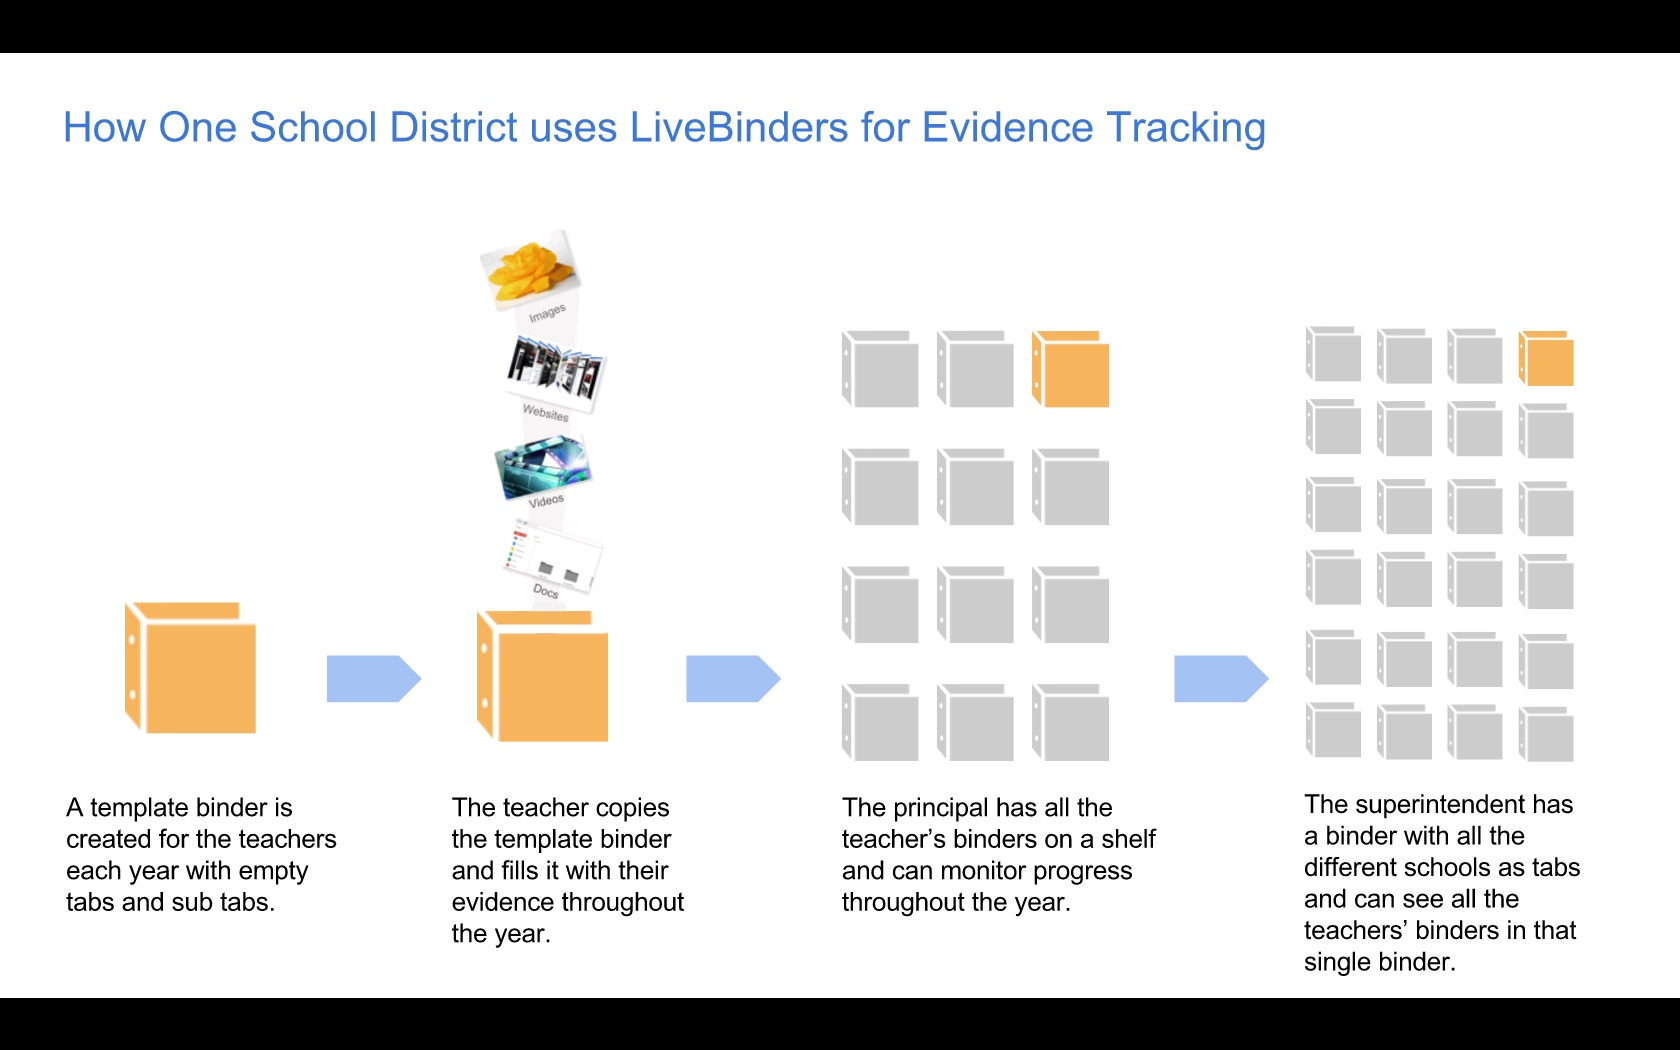 Diagram of teachers submitting evidence to principal and superentendent